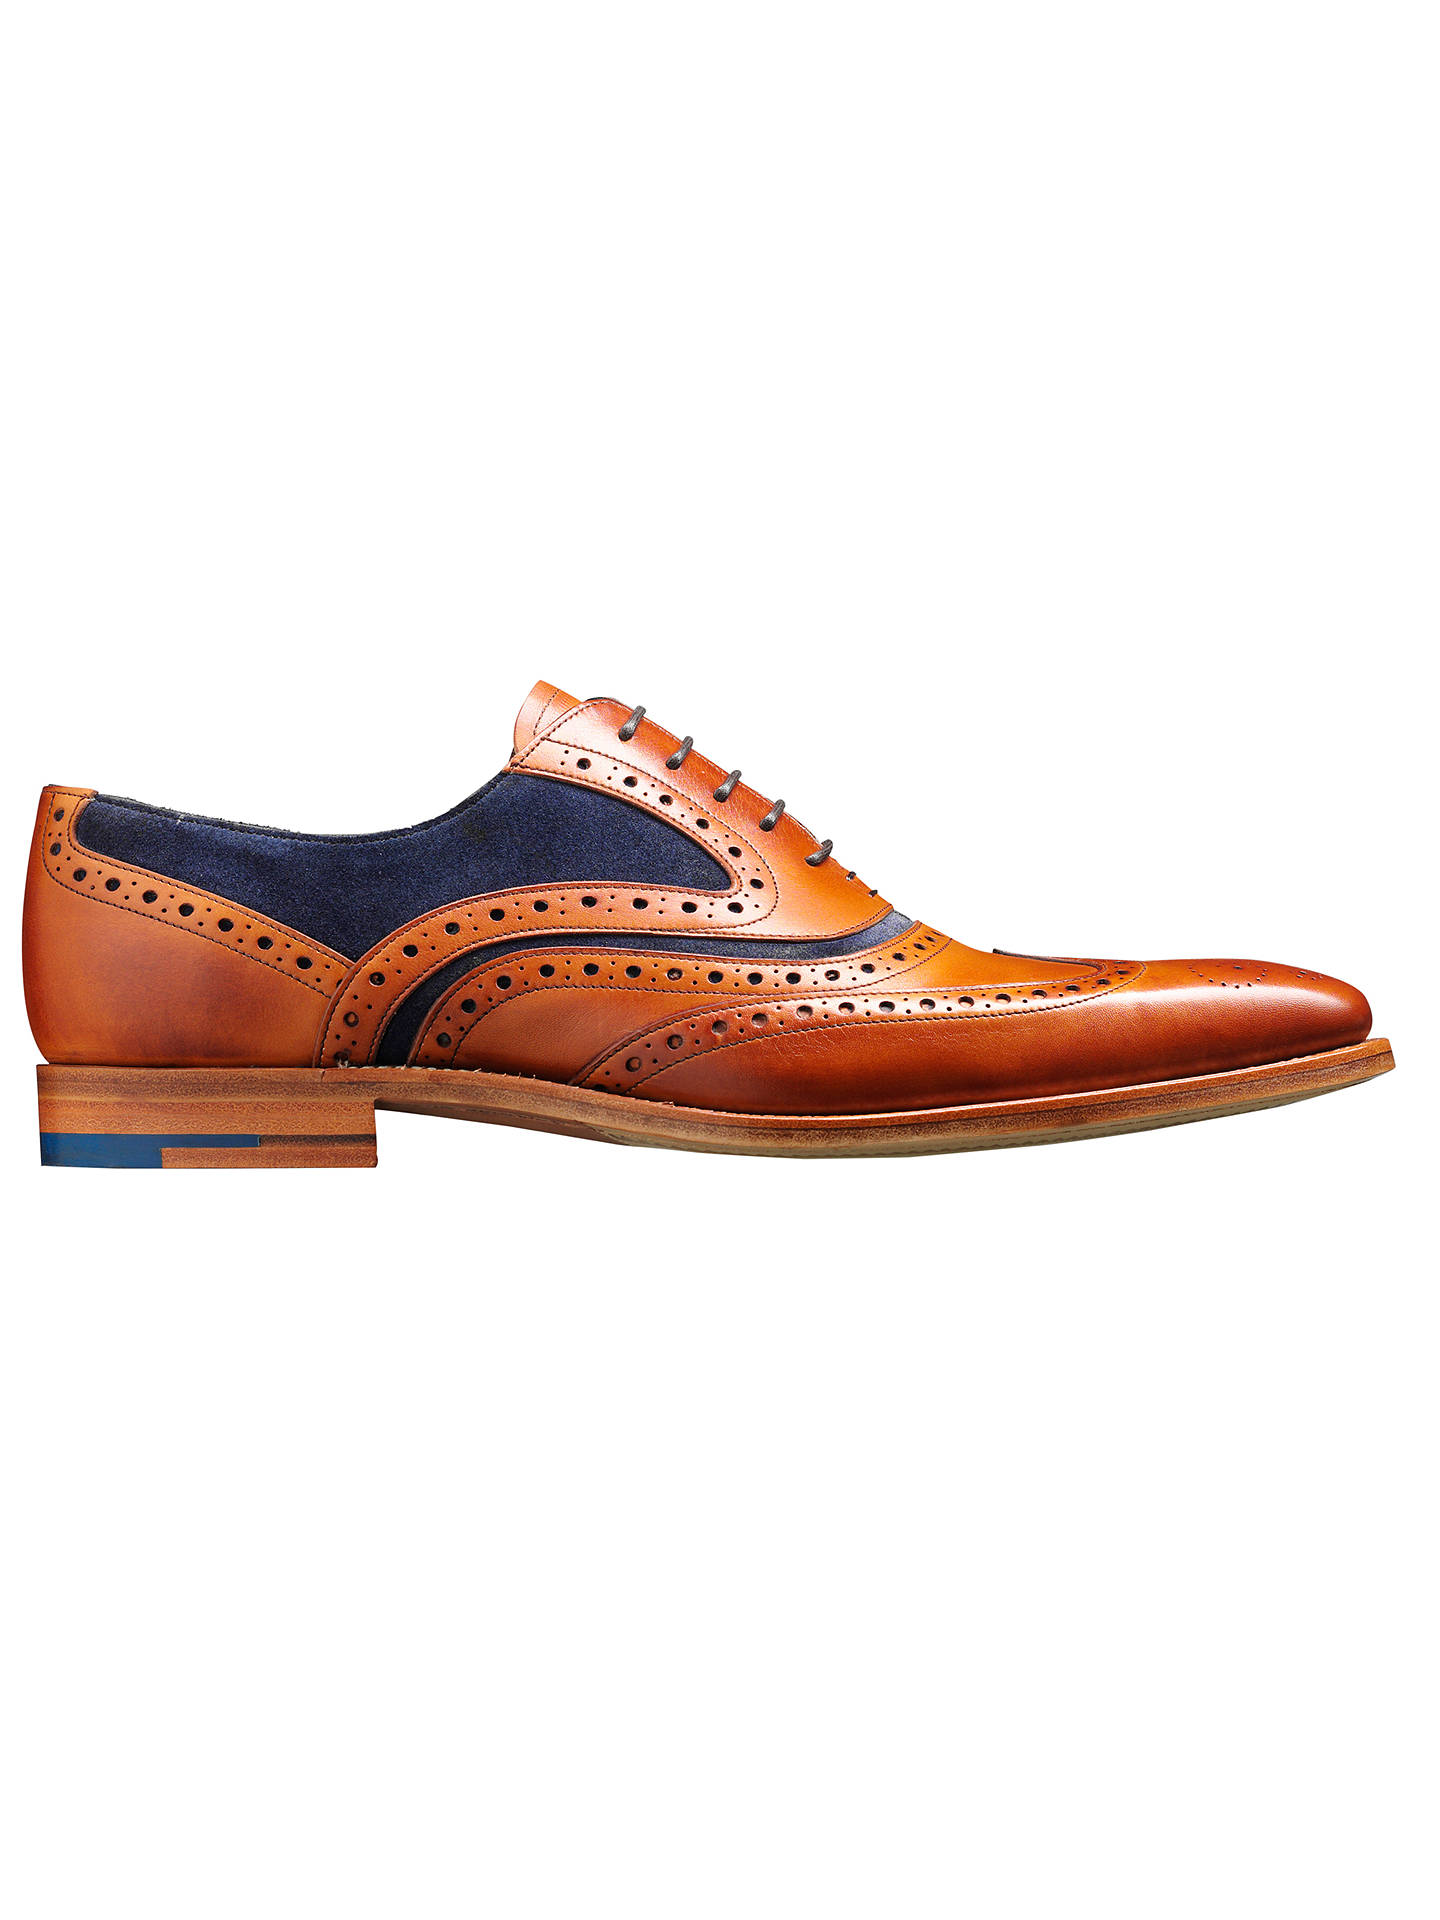 6578c2f803adf Barker McClean Goodyear Welted Leather Brogue Shoes, Cedar/Blue, Cedar/Blue